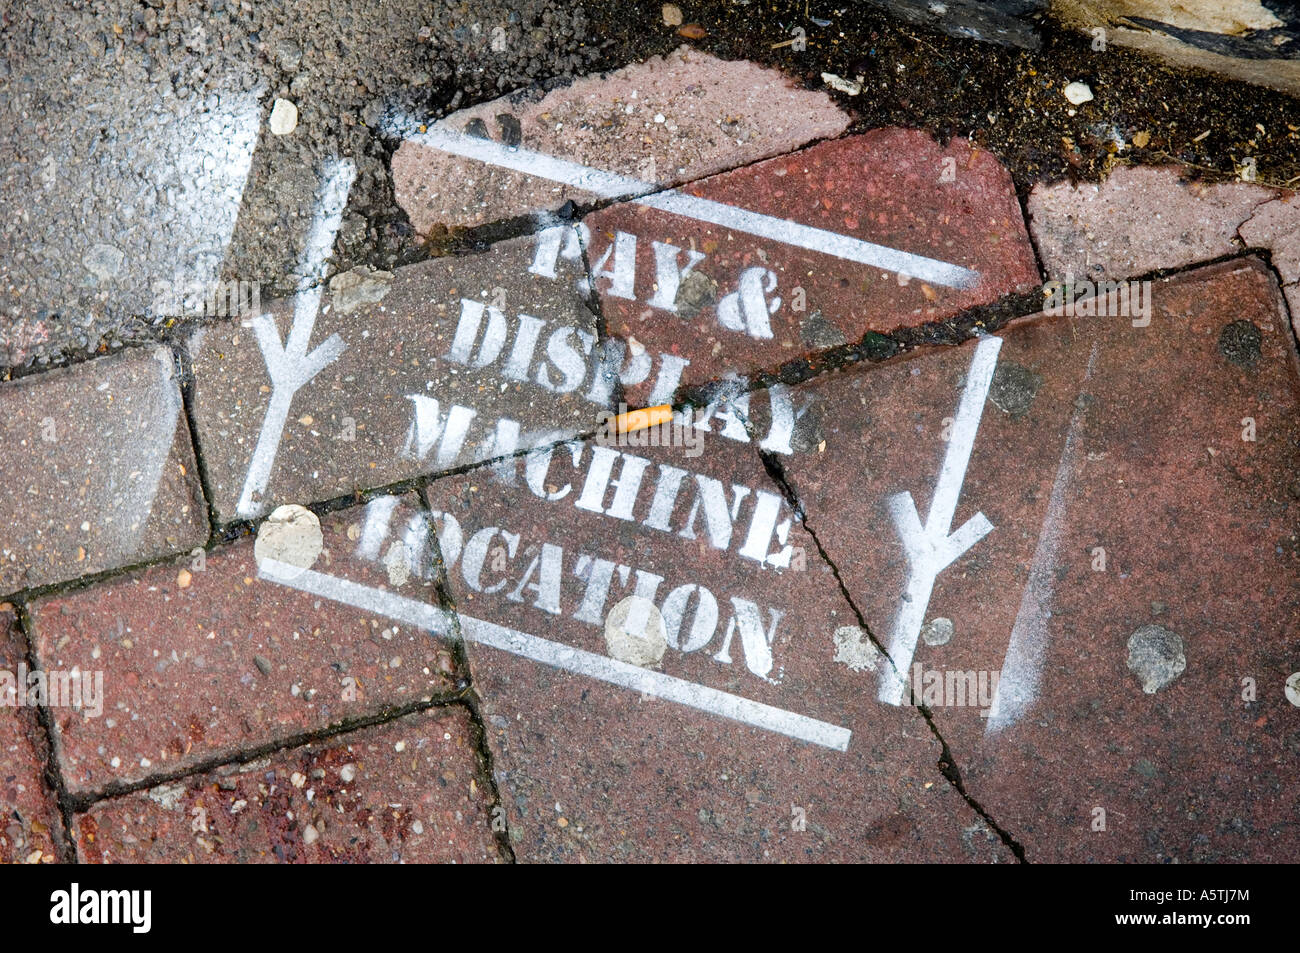 A pavement marked with paint to denote where a future pay and display machine is to be placed. Picture by Jim Holden. - Stock Image